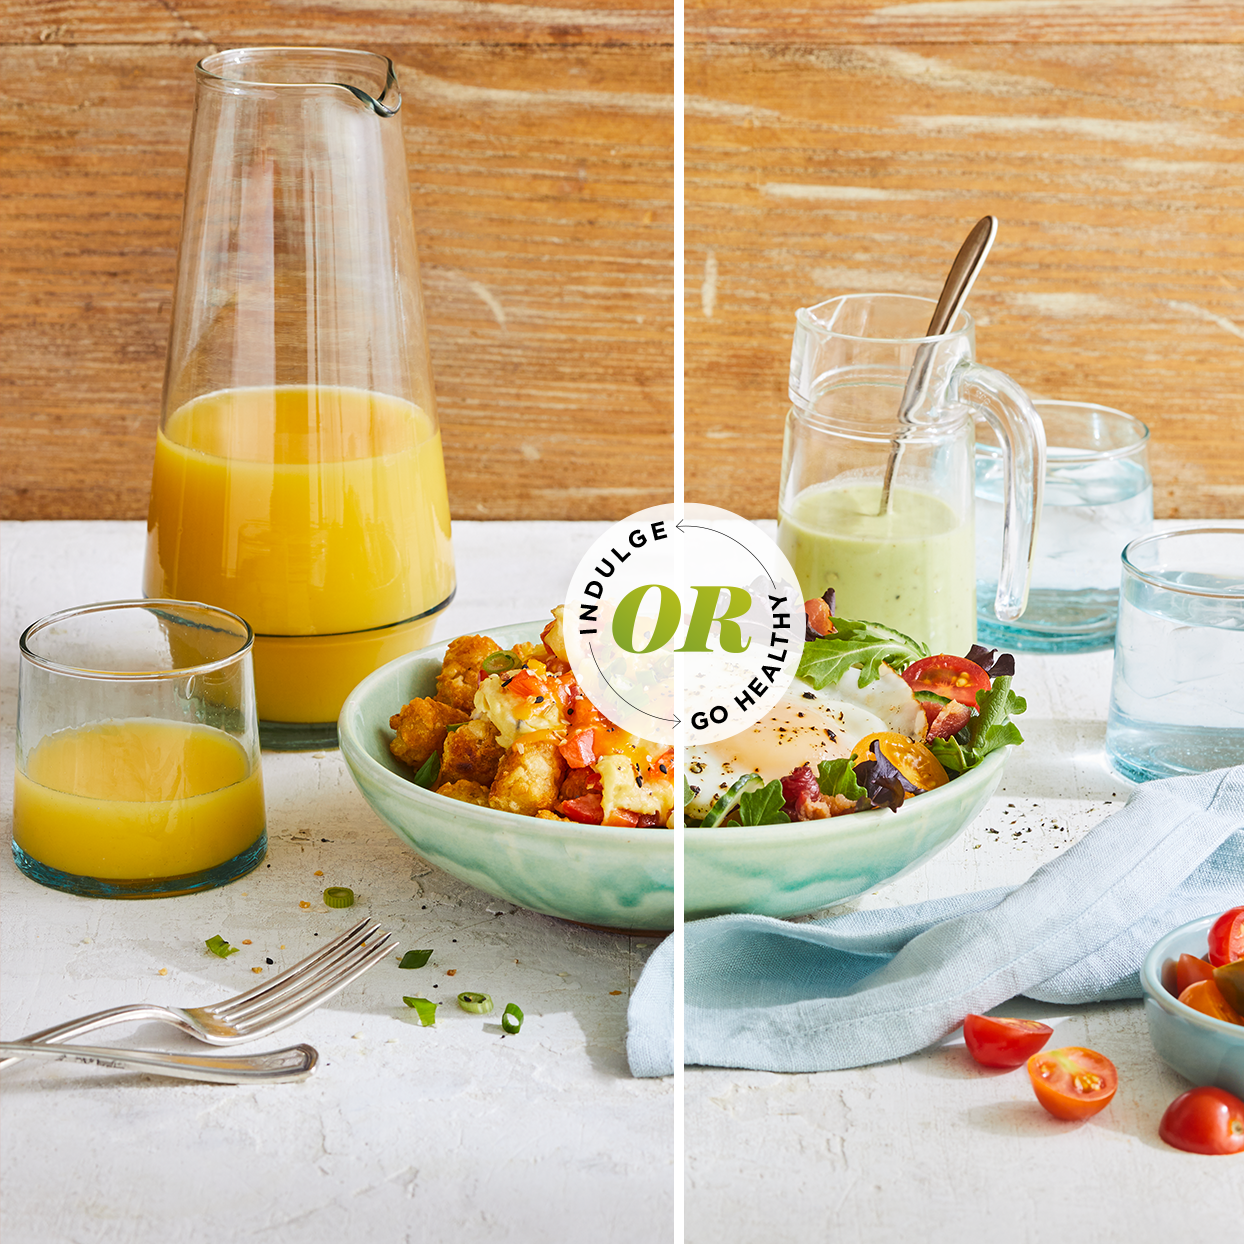 composite image of side by side breakfast bowls, one with healthier ingredient choices